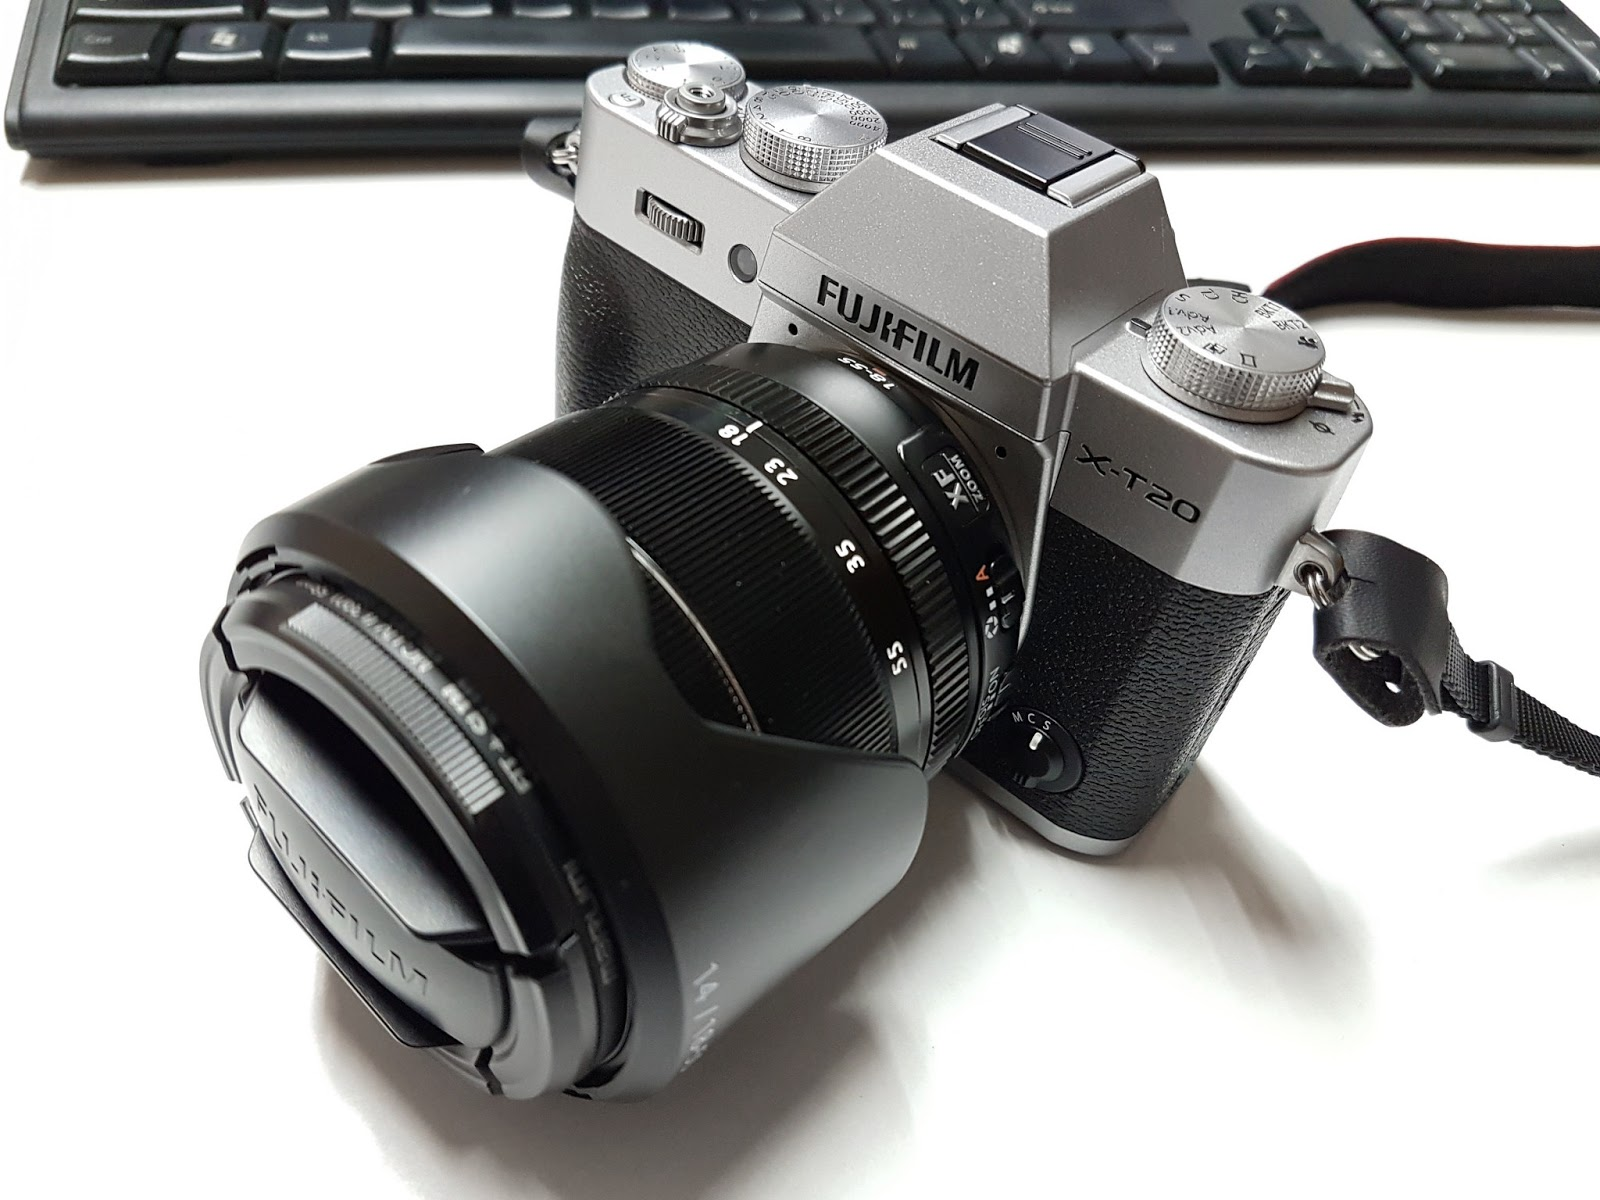 Behind The Lens Fujinon Xf18 55mm F28 4 R Lm Ois Just Recently I Tried Jumping Into Mirrorless Bandwagon With My Fujifilm X T20 Purchase It Came Packaged 4r Kit